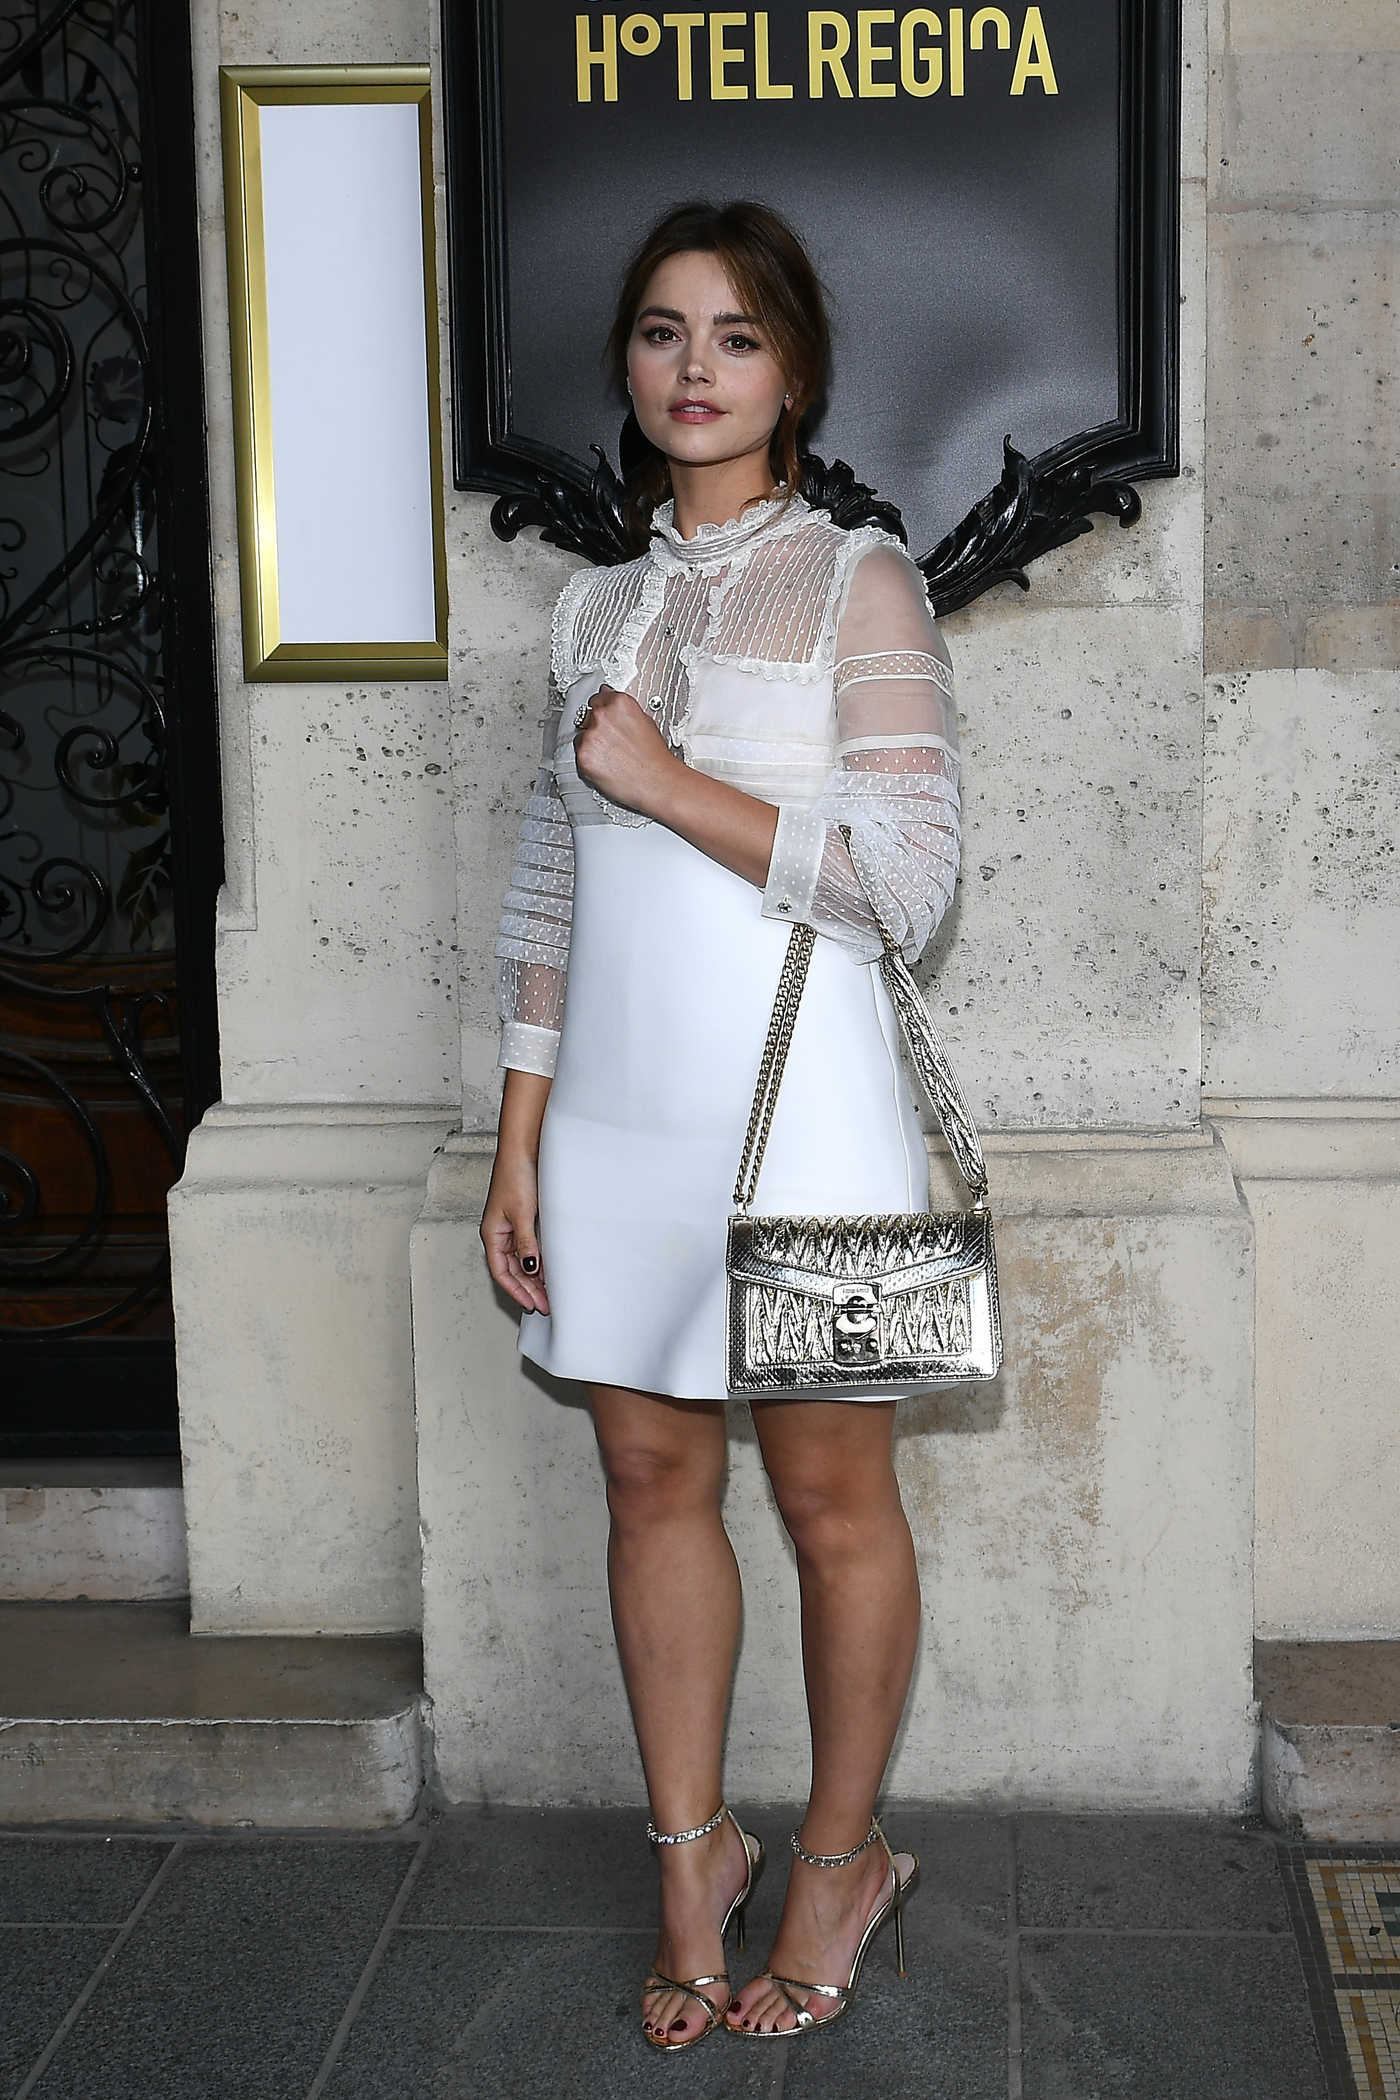 Jenna Coleman at 2019 Miu Miu Cruise Collection Show Photocall in Paris 06/30/2018